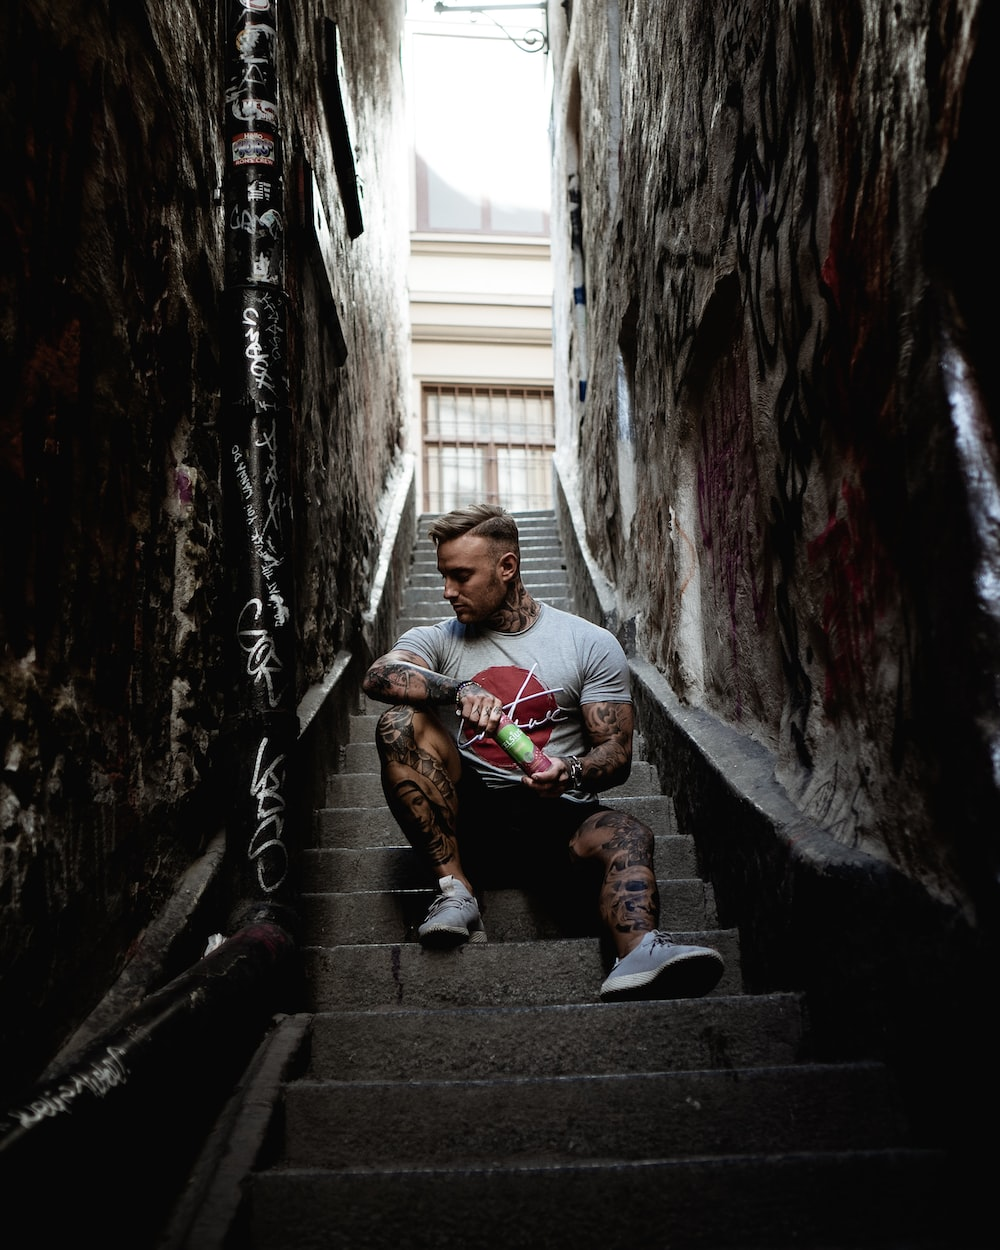 man sitting on stair in narrow pathway